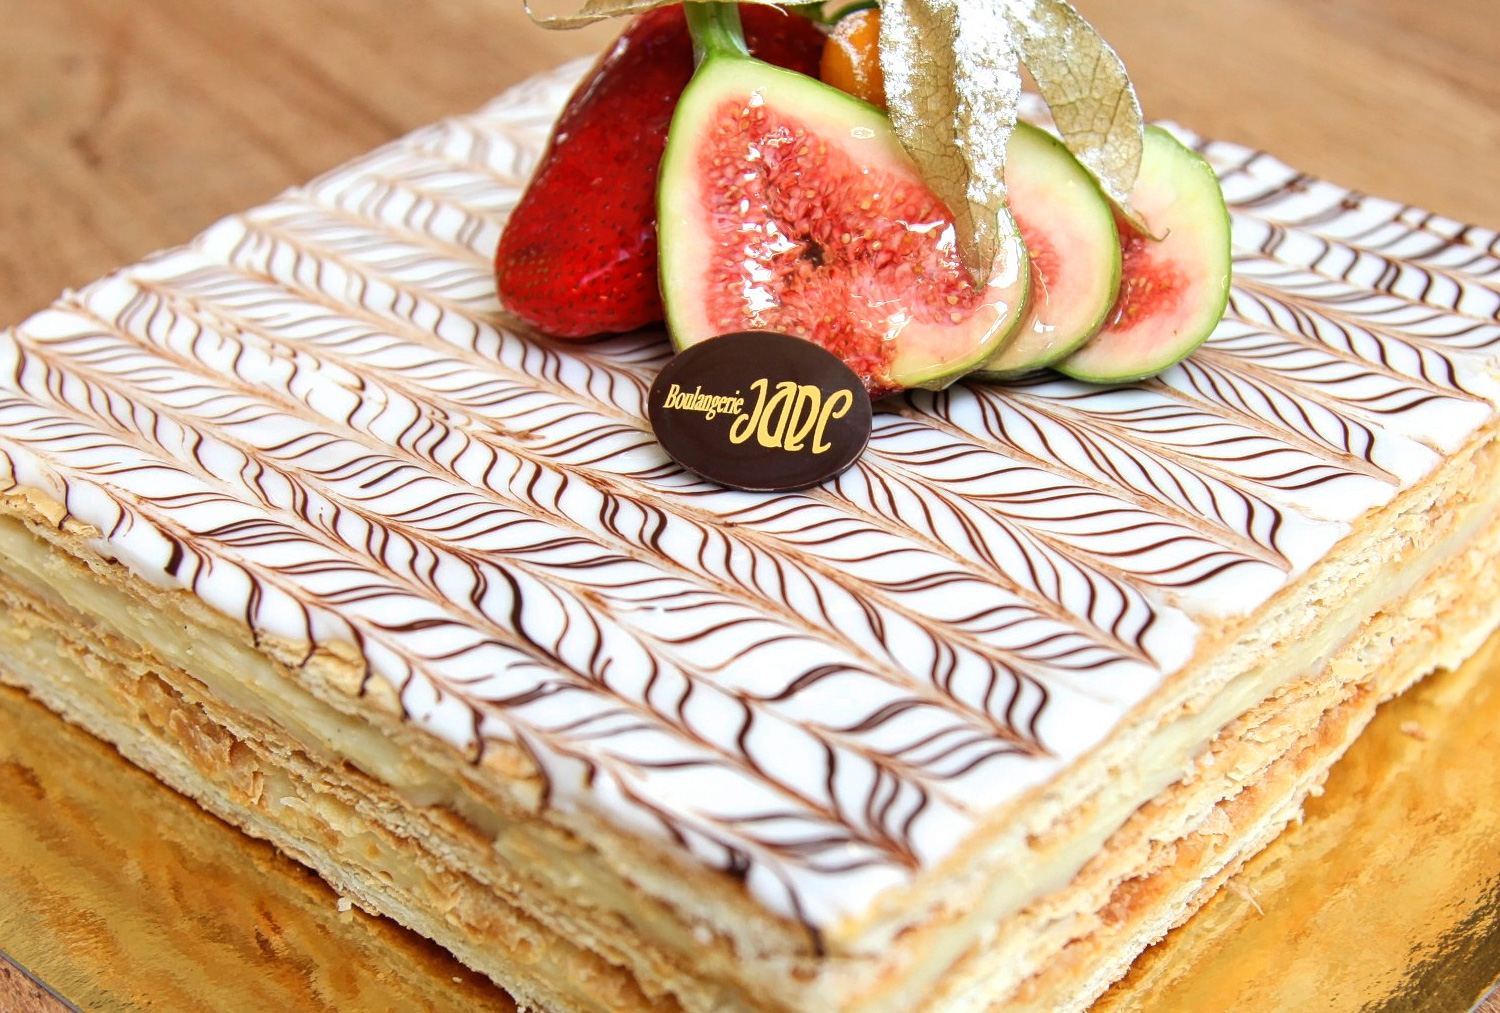 boulangerie-jade-products-cakes-tarts-pastries14.jpg